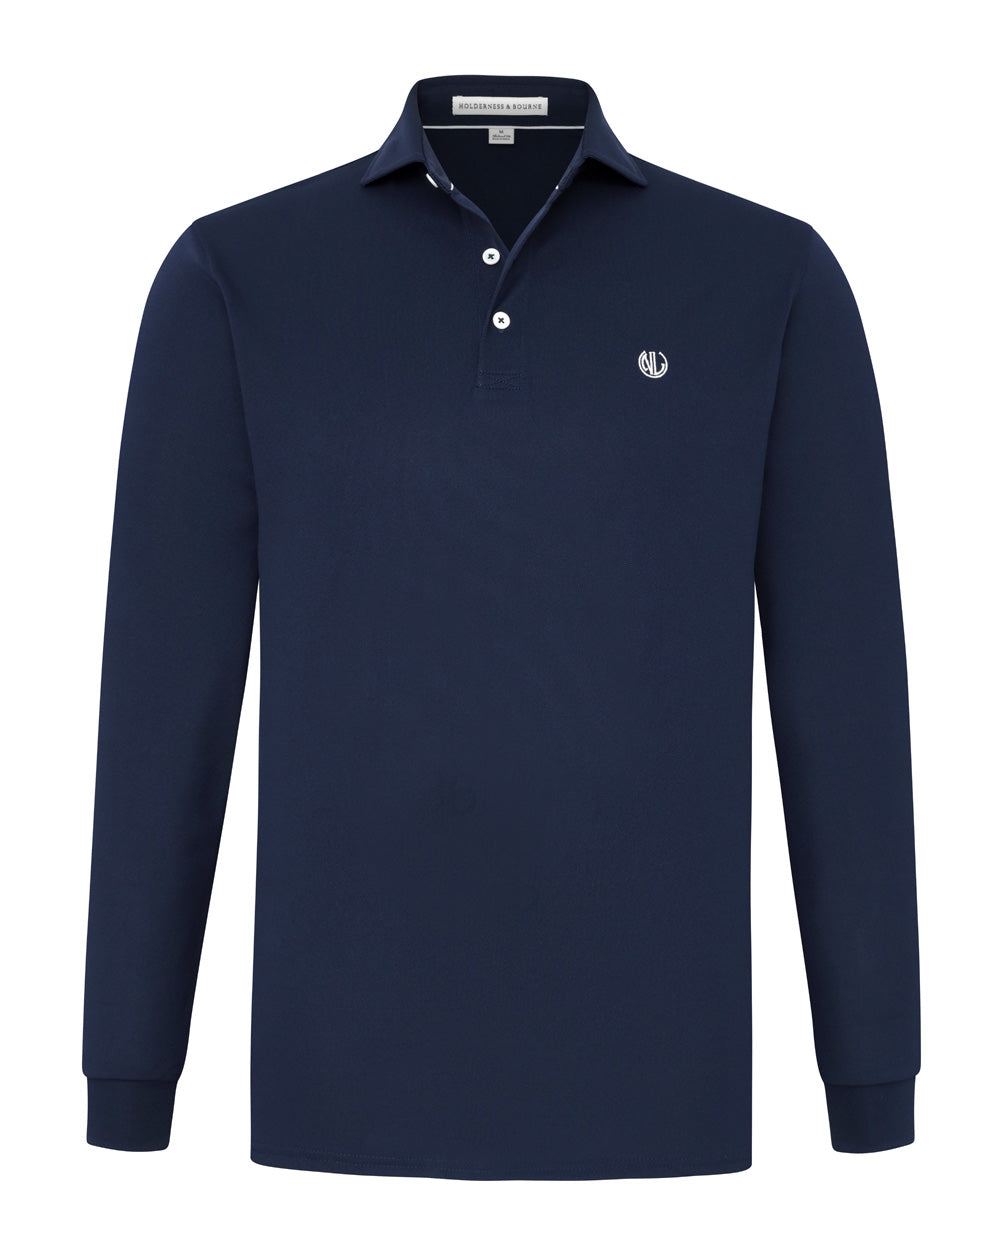 NLU + H&B Long Sleeve Polo | Navy